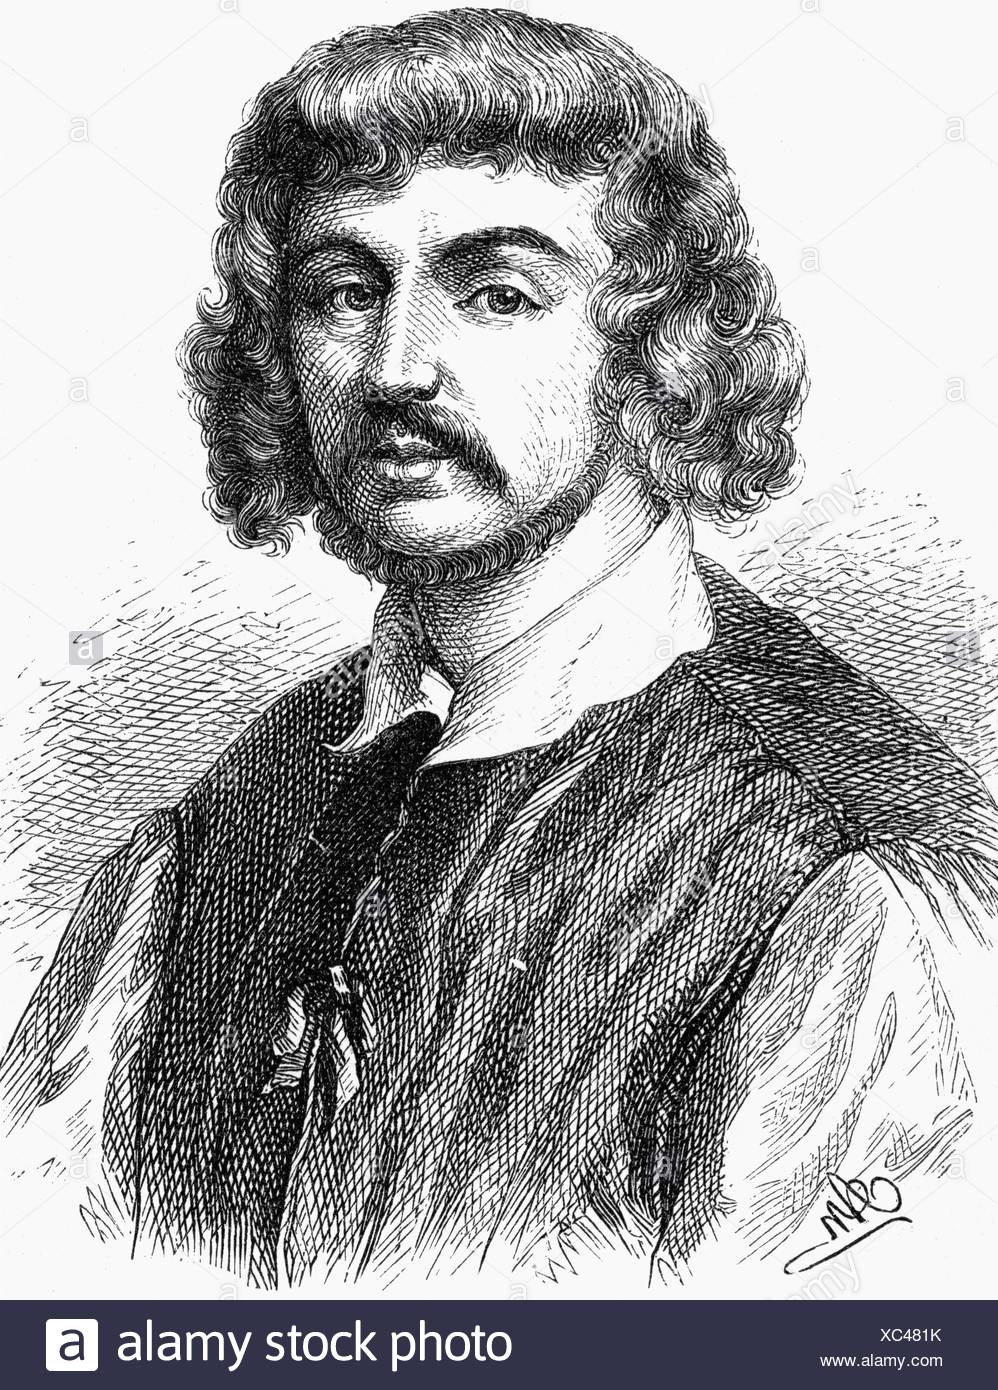 Lorrain, Claude, 1600 - 23.11.1682, French painter, portrait, wood engraving, 19th century, , Additional-Rights-Clearances-NA - Stock Image